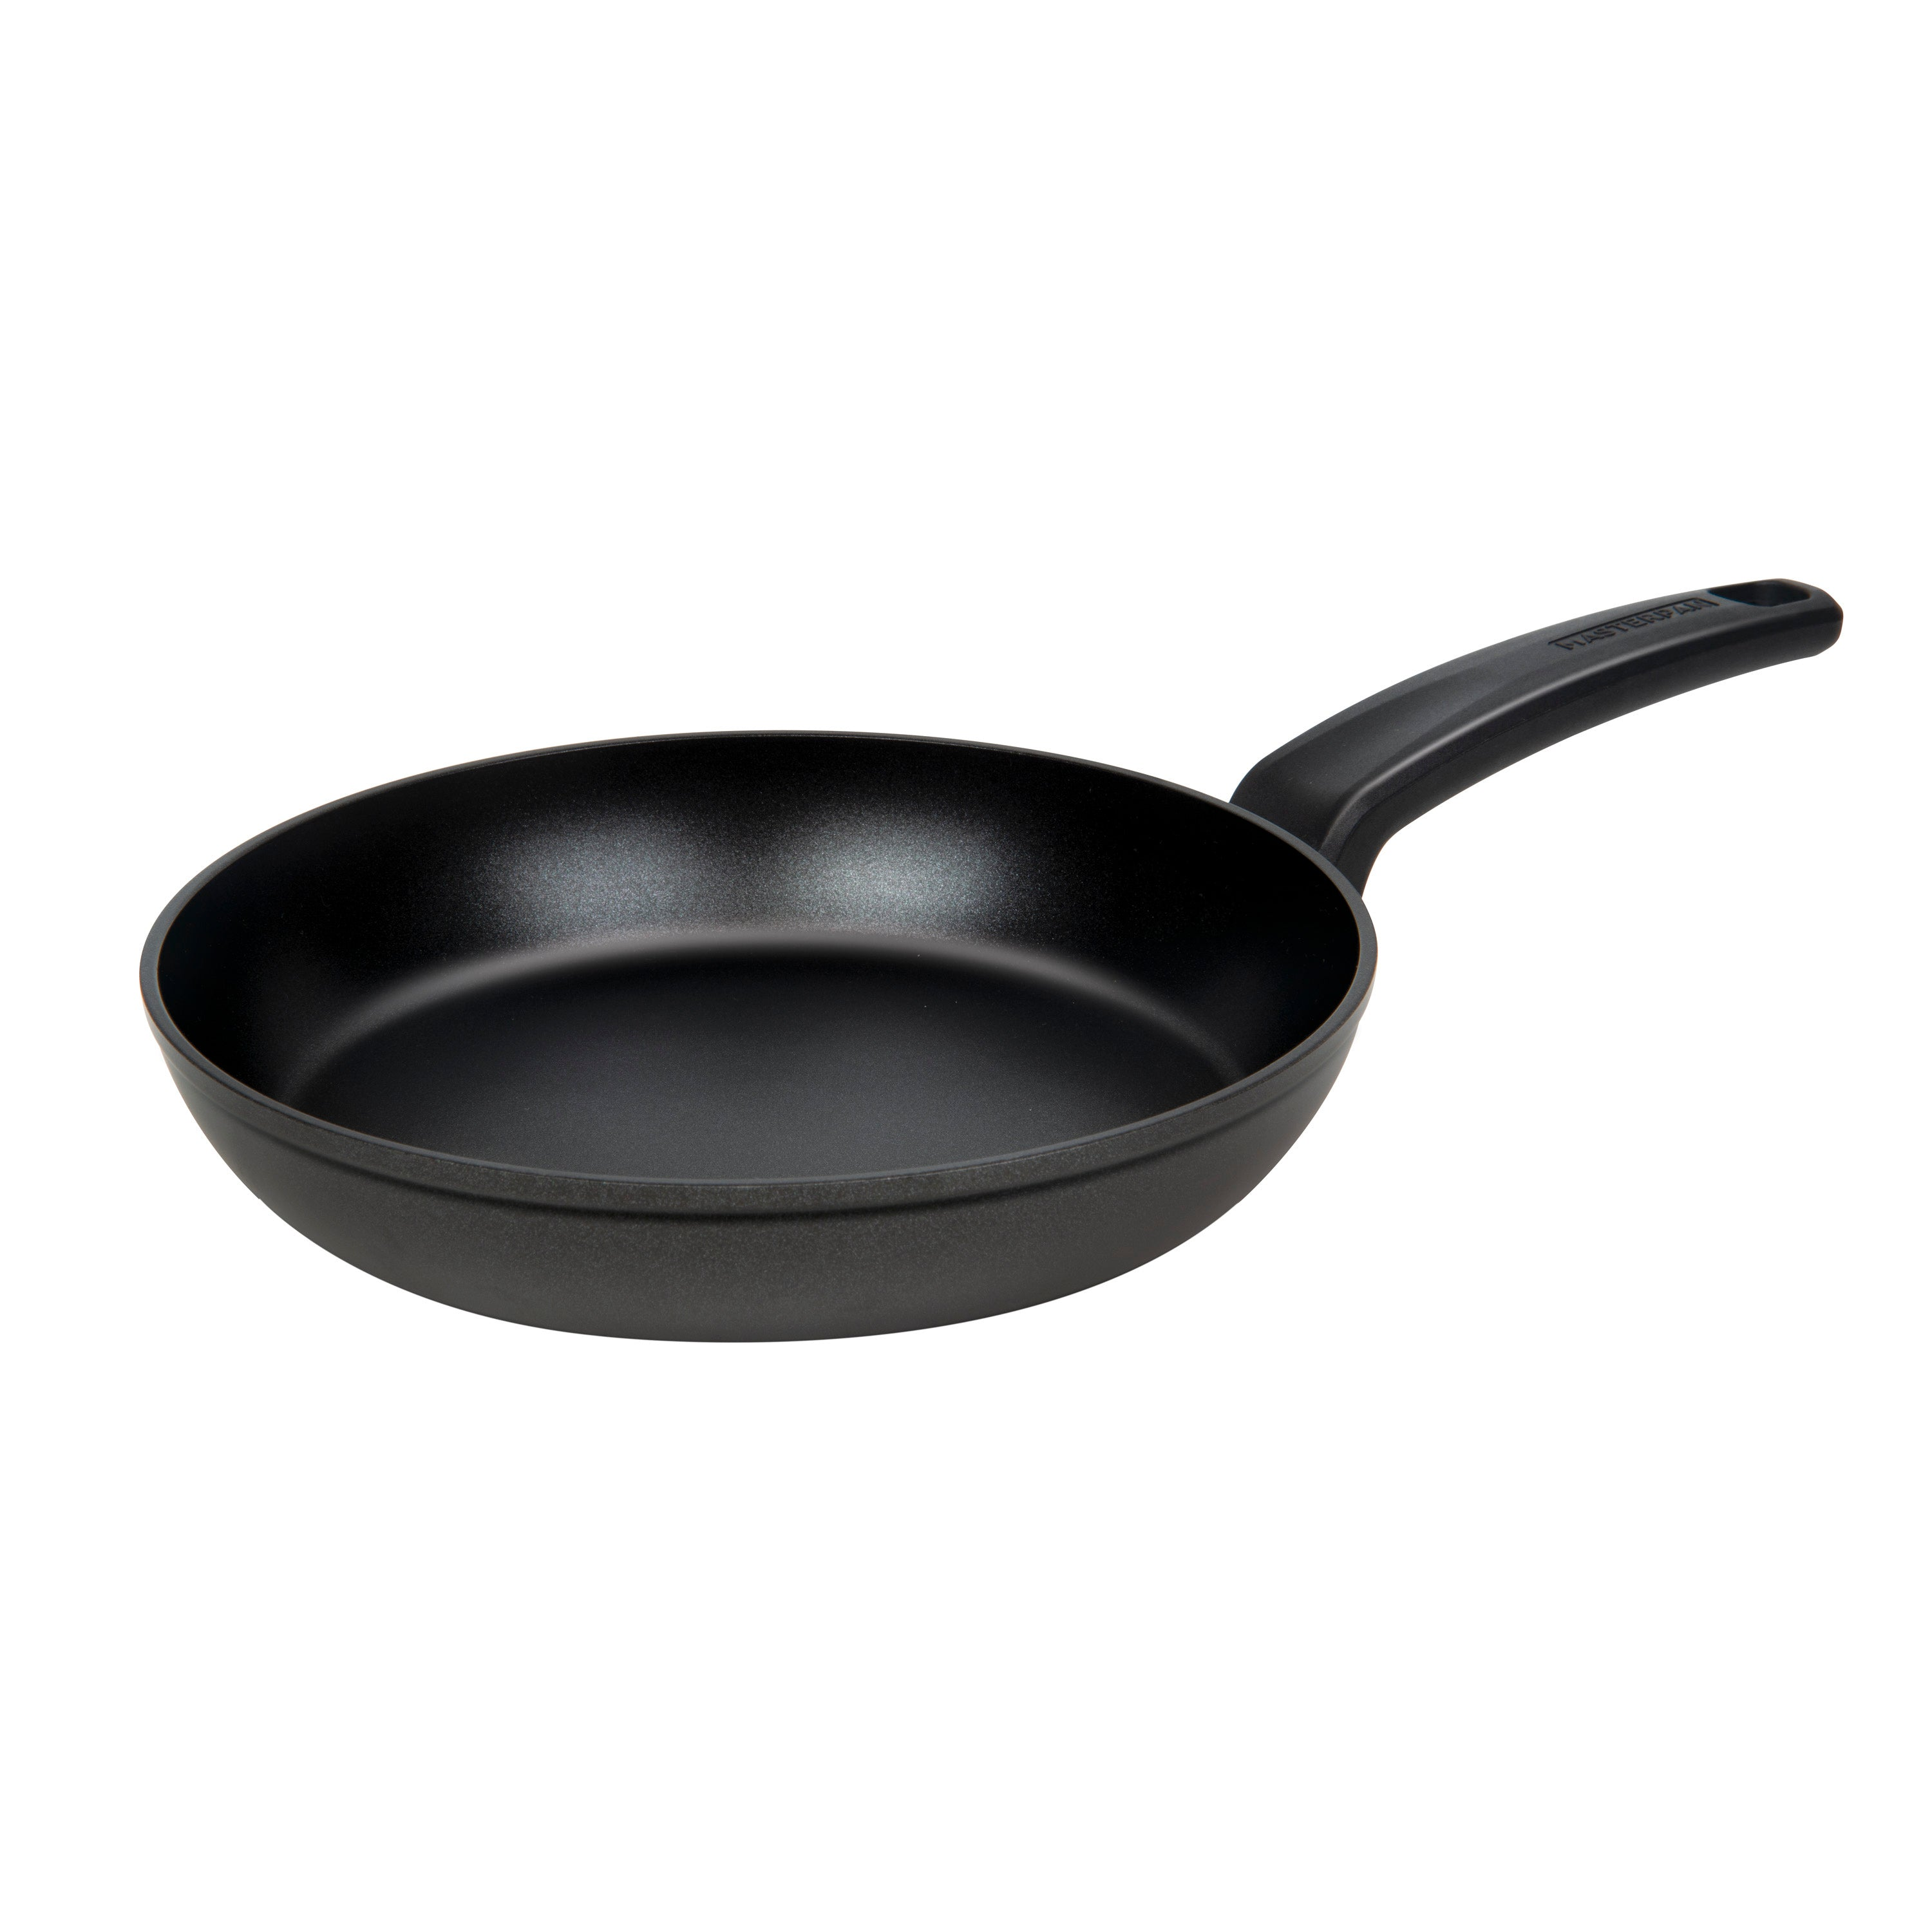 "FRY PAN & SKILLET, NON-STICK ALUMINIUM COOKWARE WITH BAKELITE HANDLE, 9.5"" (24cm)"